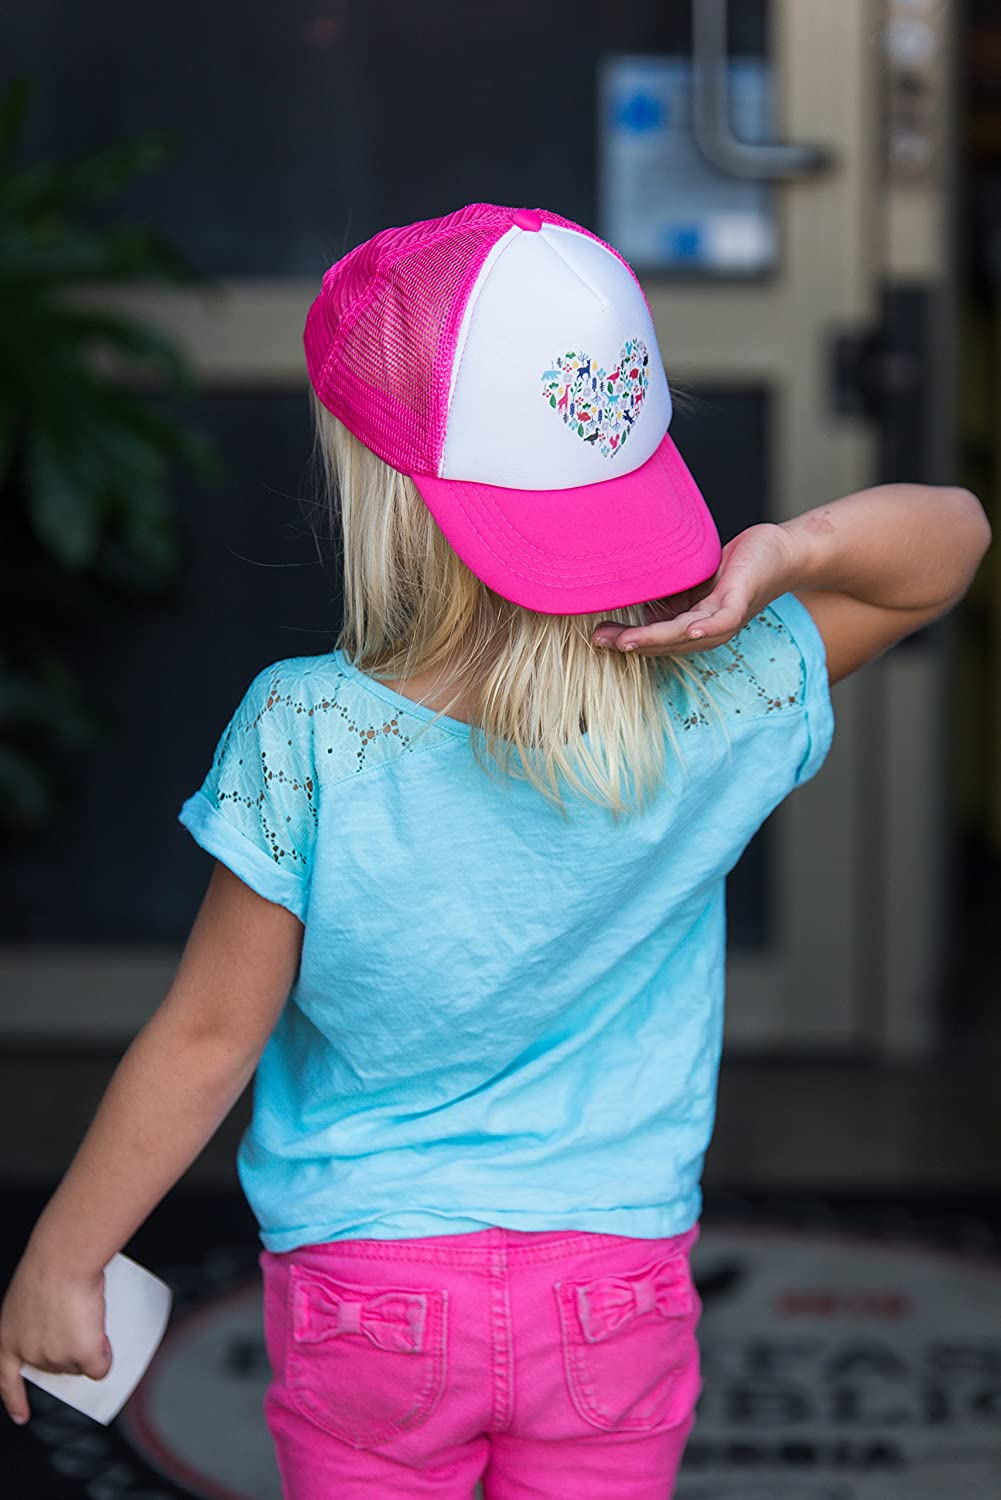 Kids Baseball Cap is Available in Baby Toddler JP DOoDLES Heart on Kids Trucker Hat and Adult Sizes.